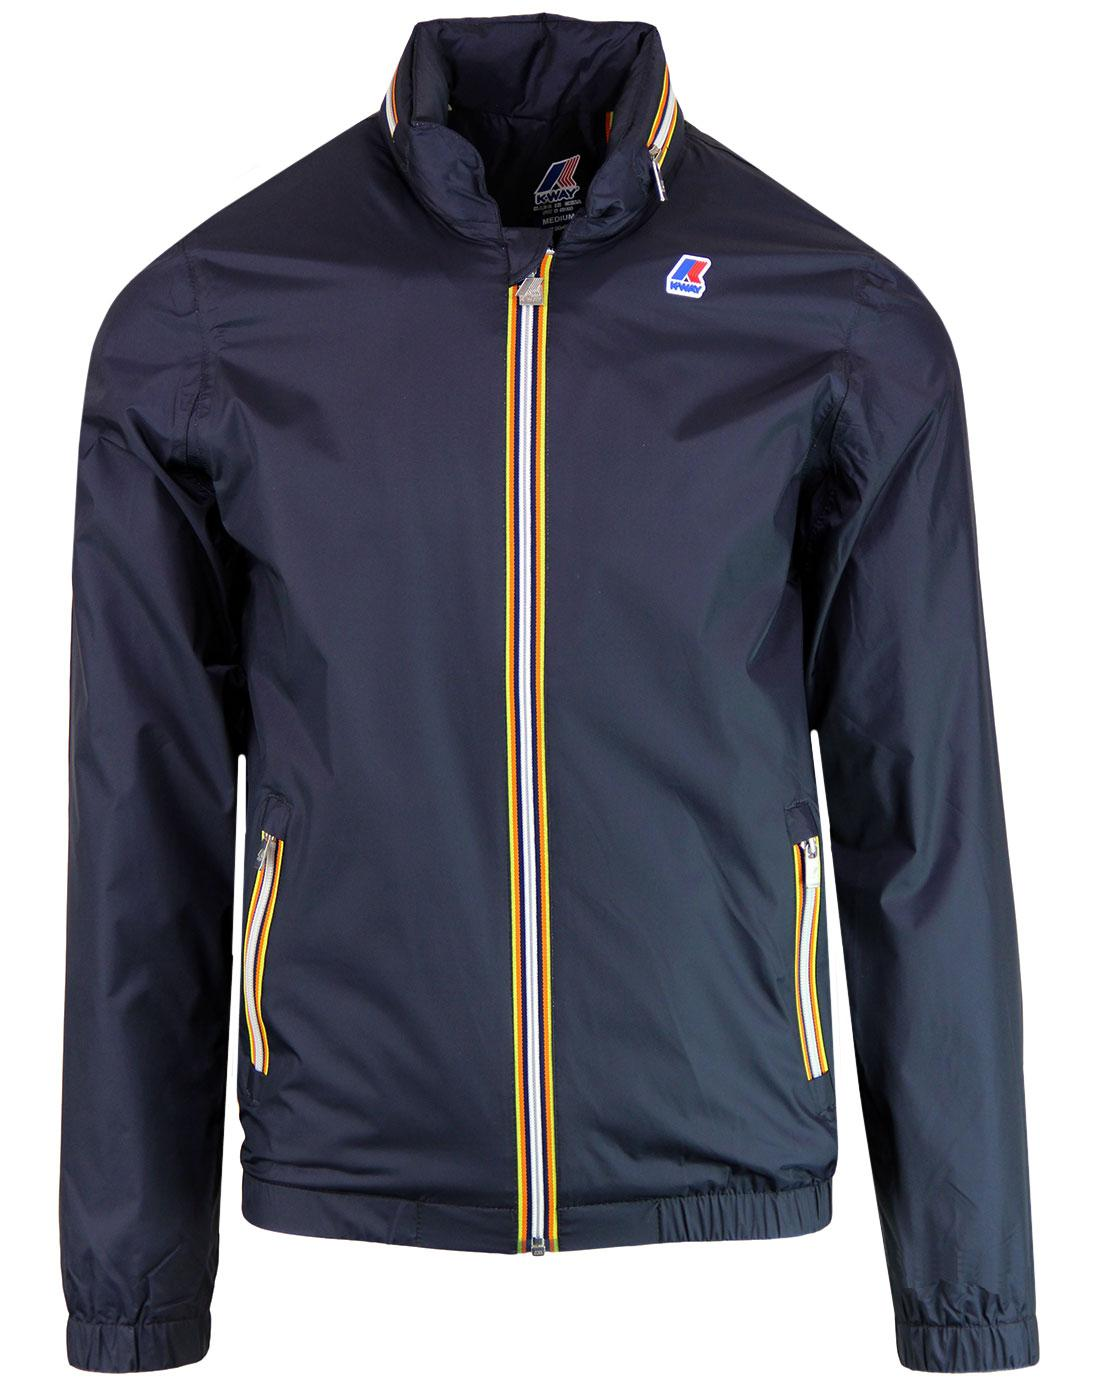 Philippe K-WAY Retro Nylon Jersey Bomber Jacket BD